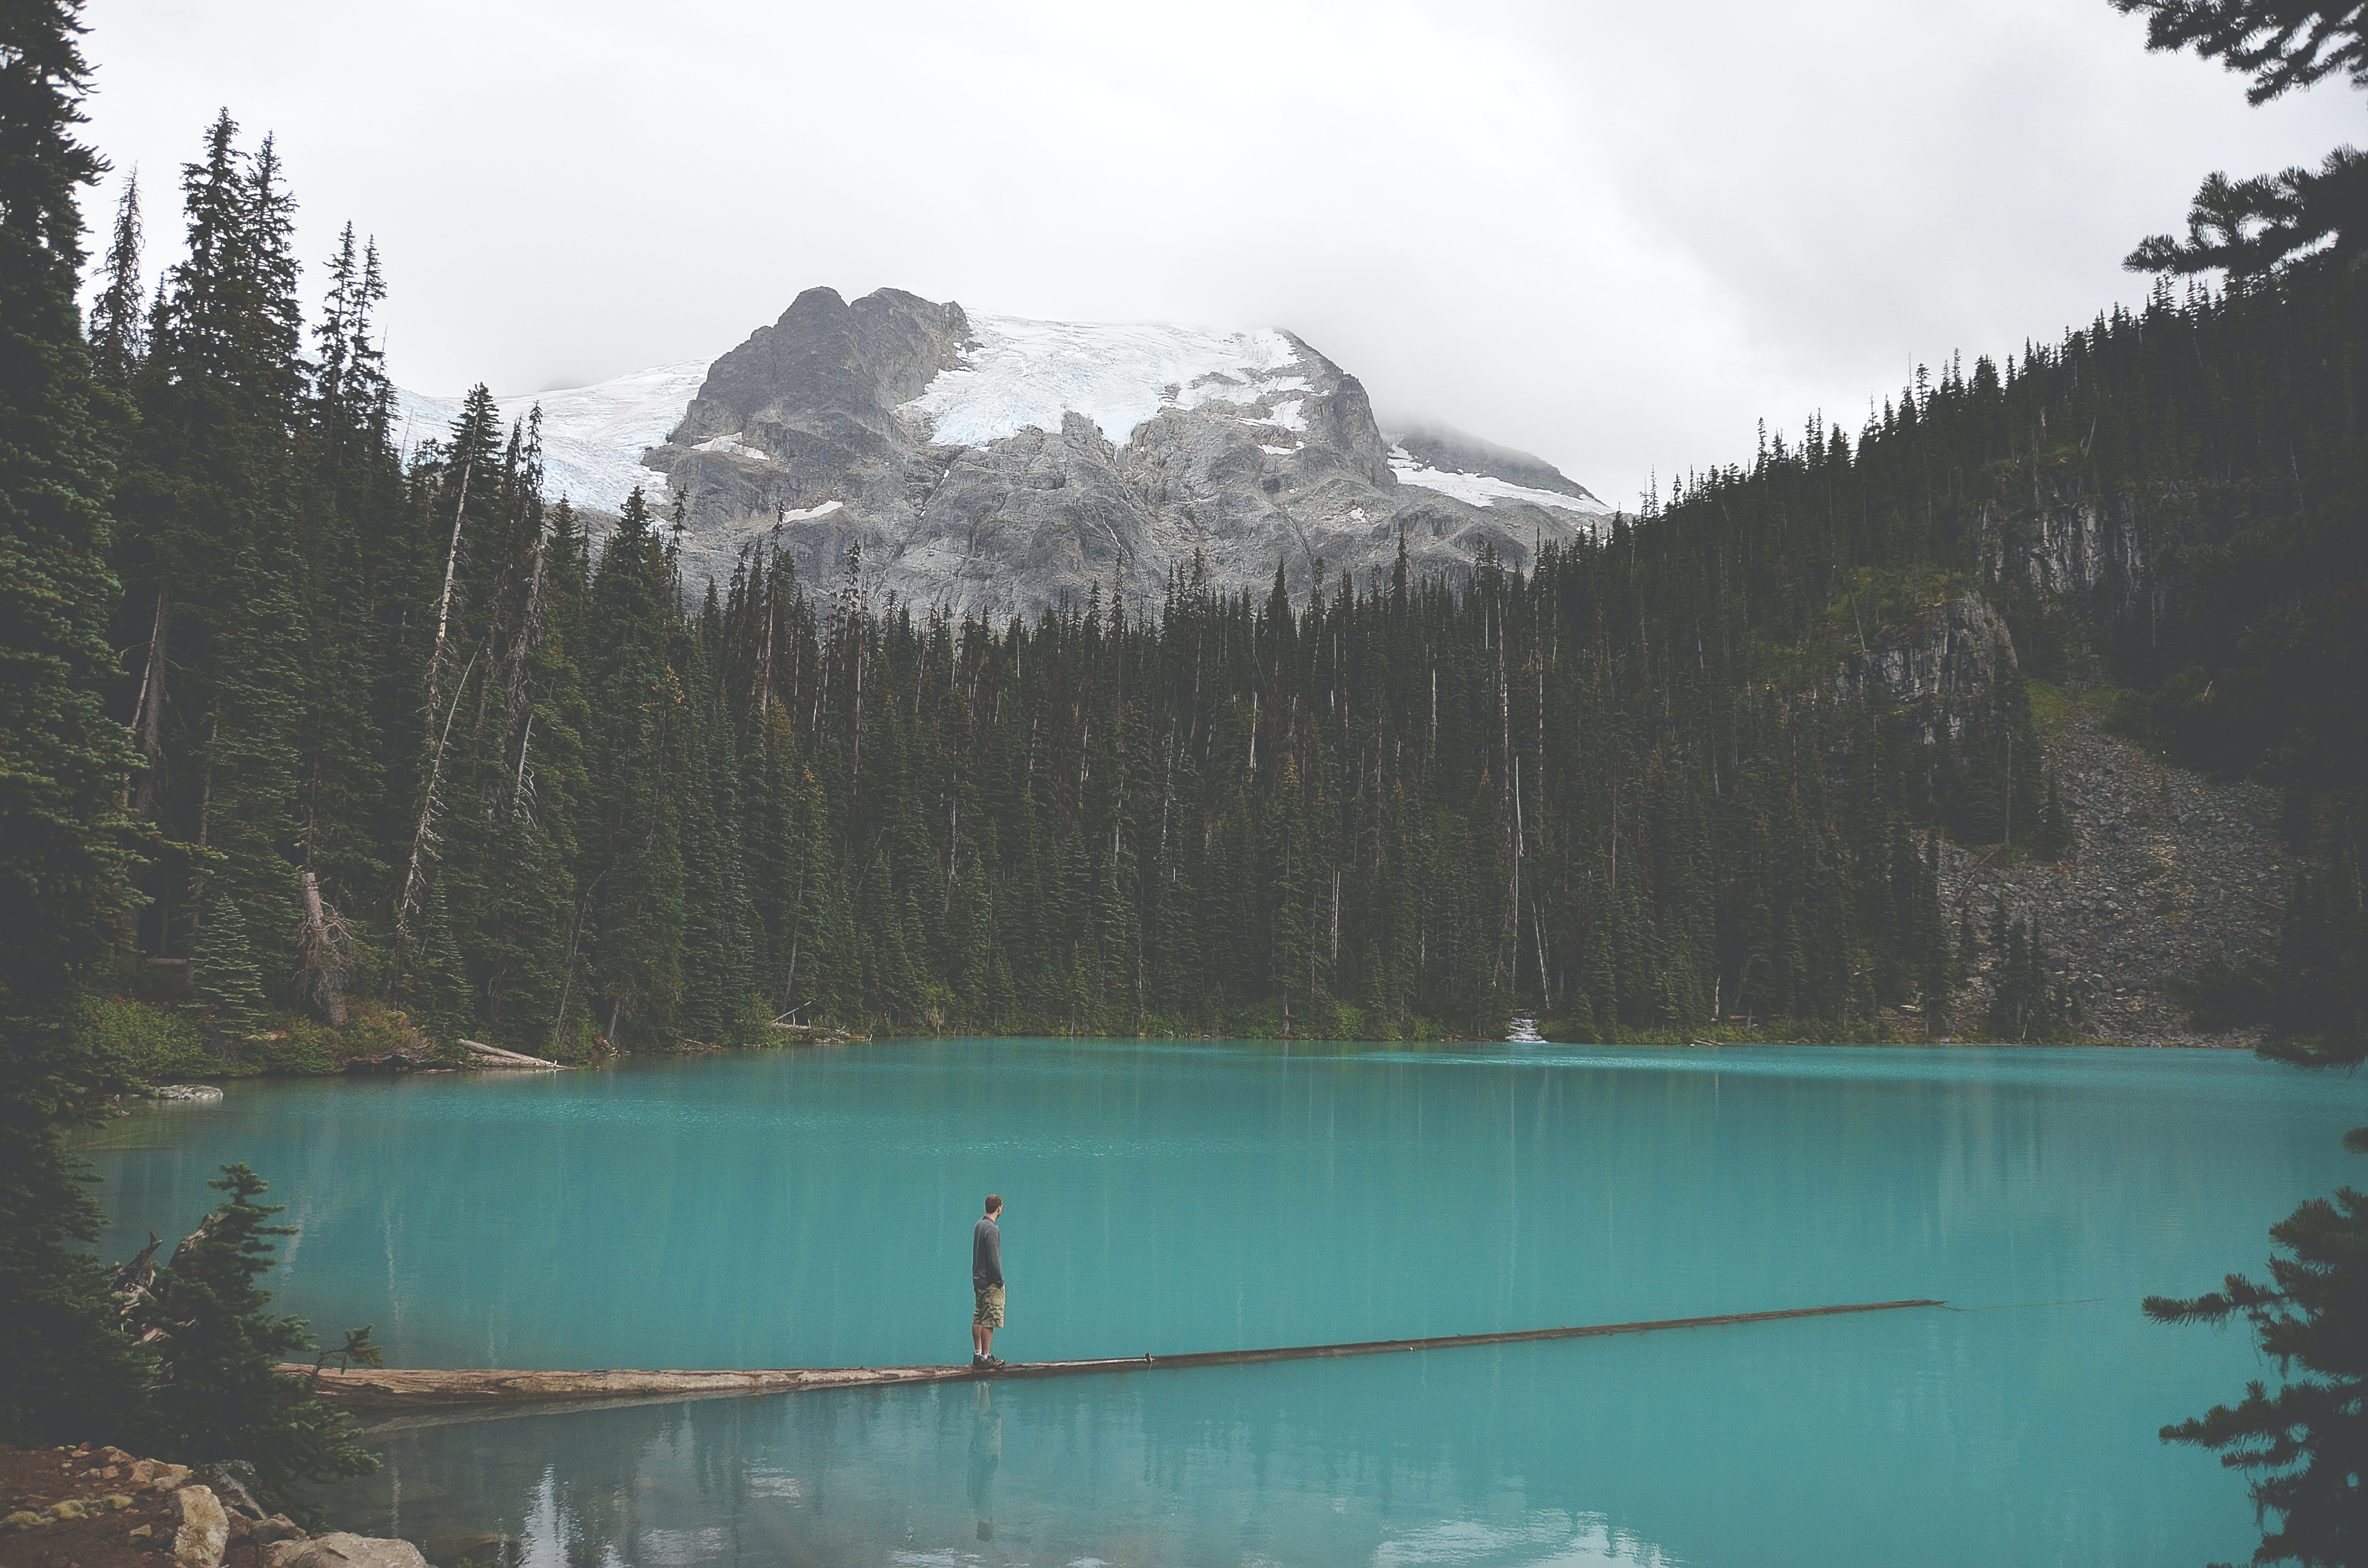 A man at a lake surrounded by trees and big rock covered in snow